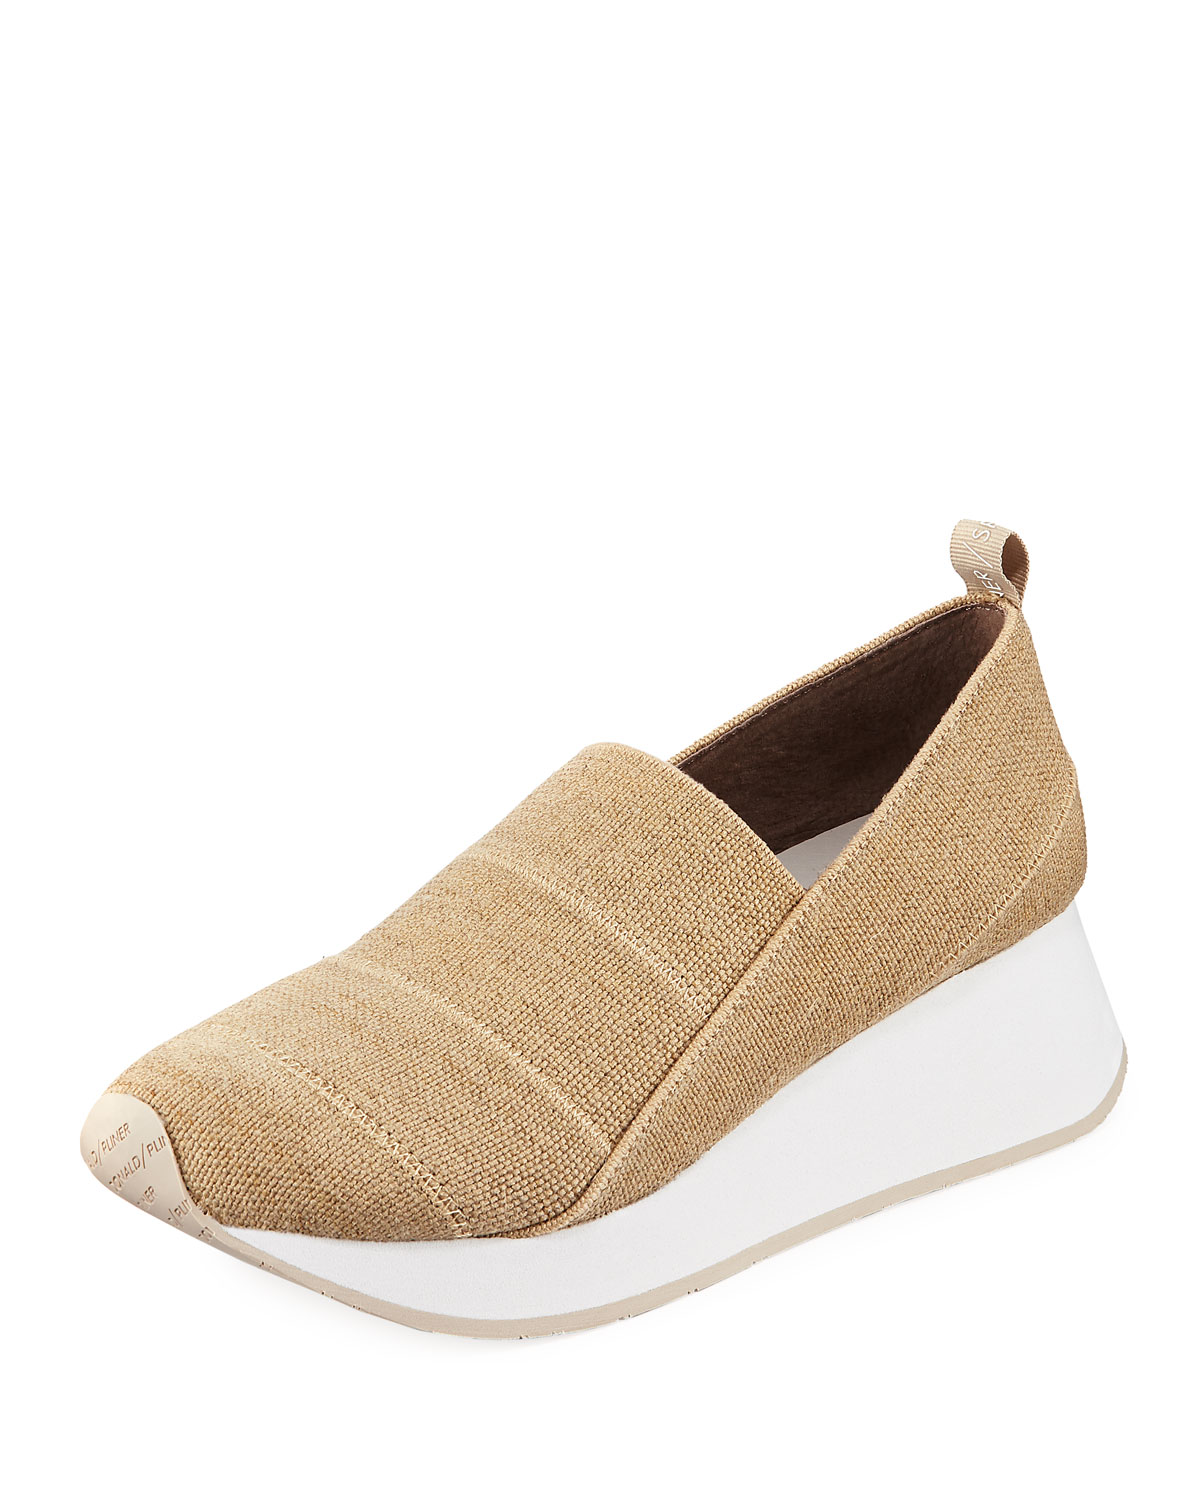 31479b13222f Donald J Pliner Piper Stretch Linen Slip-On Sneakers